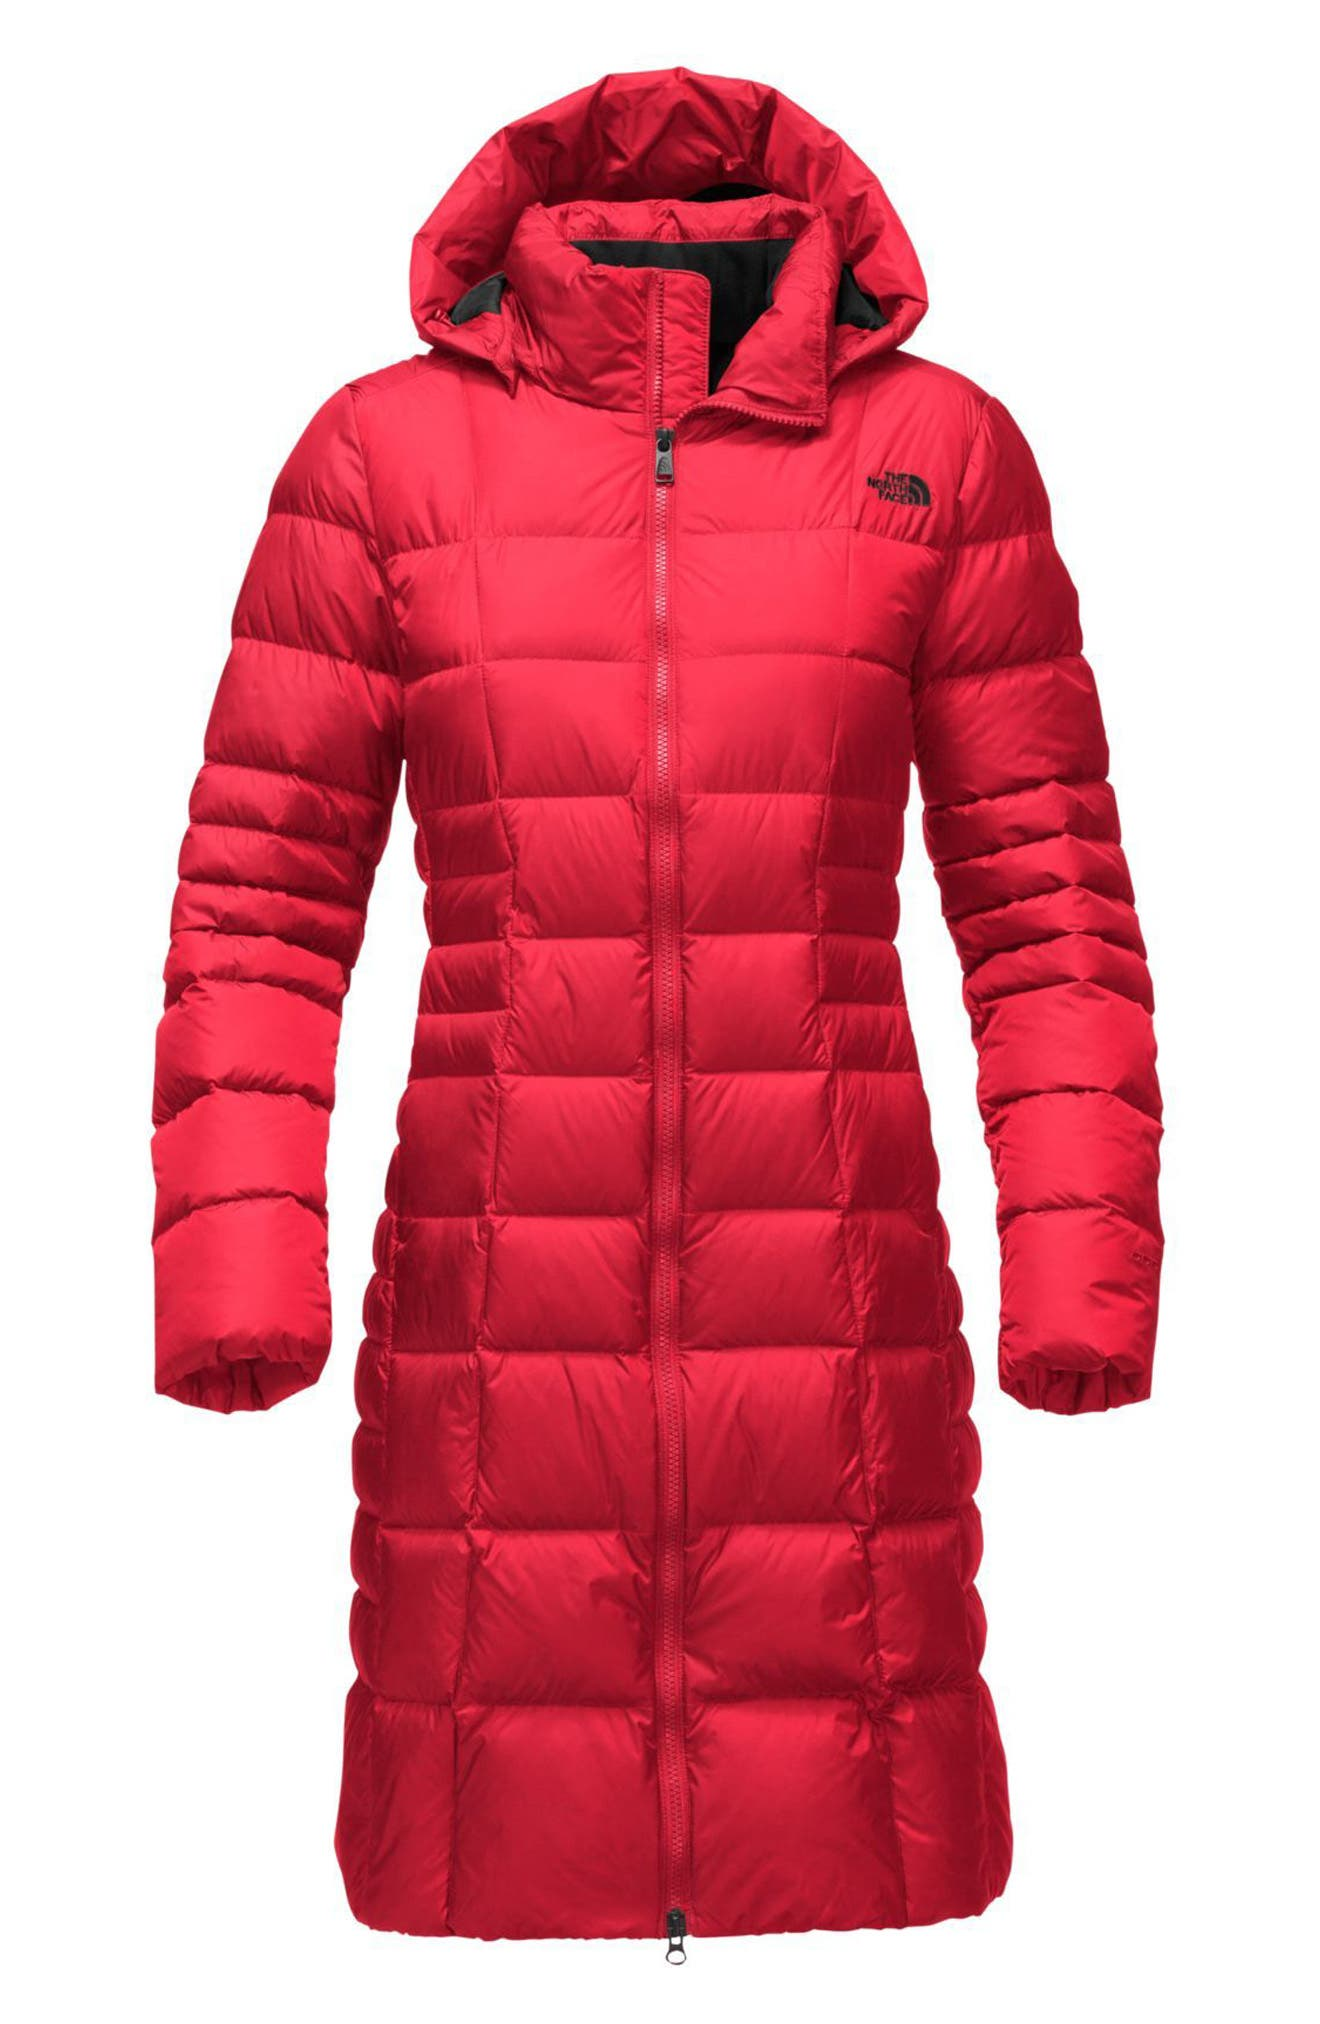 Alternate Image 1 Selected - The North Face 'Metropolis II' Hooded Water Resistant Down Parka